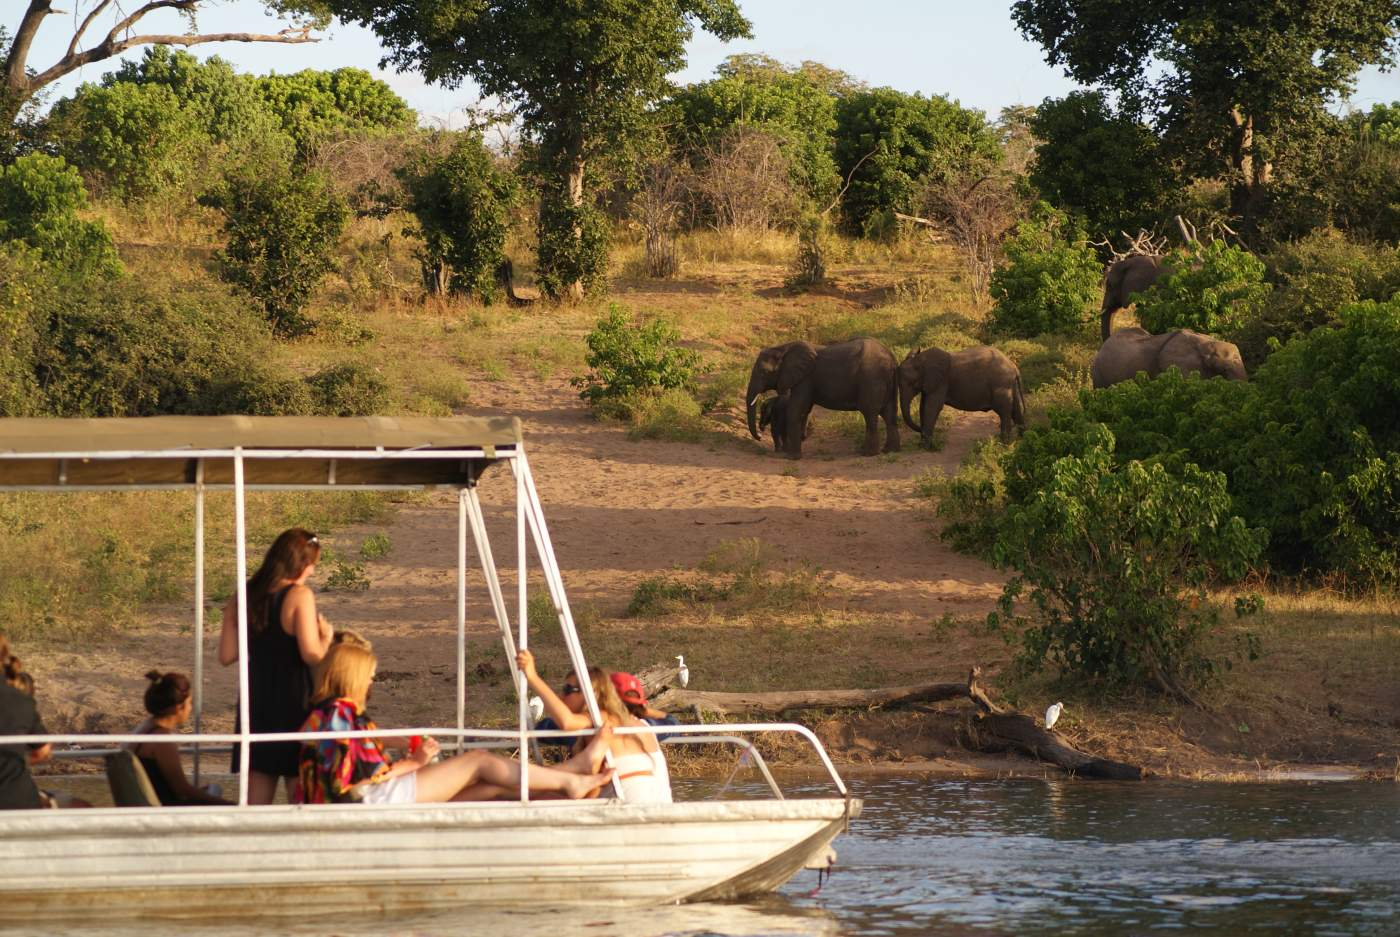 Bootsfahrt im Chobe Nationalpark Botswana Untouched Lodge Safari Rundreise